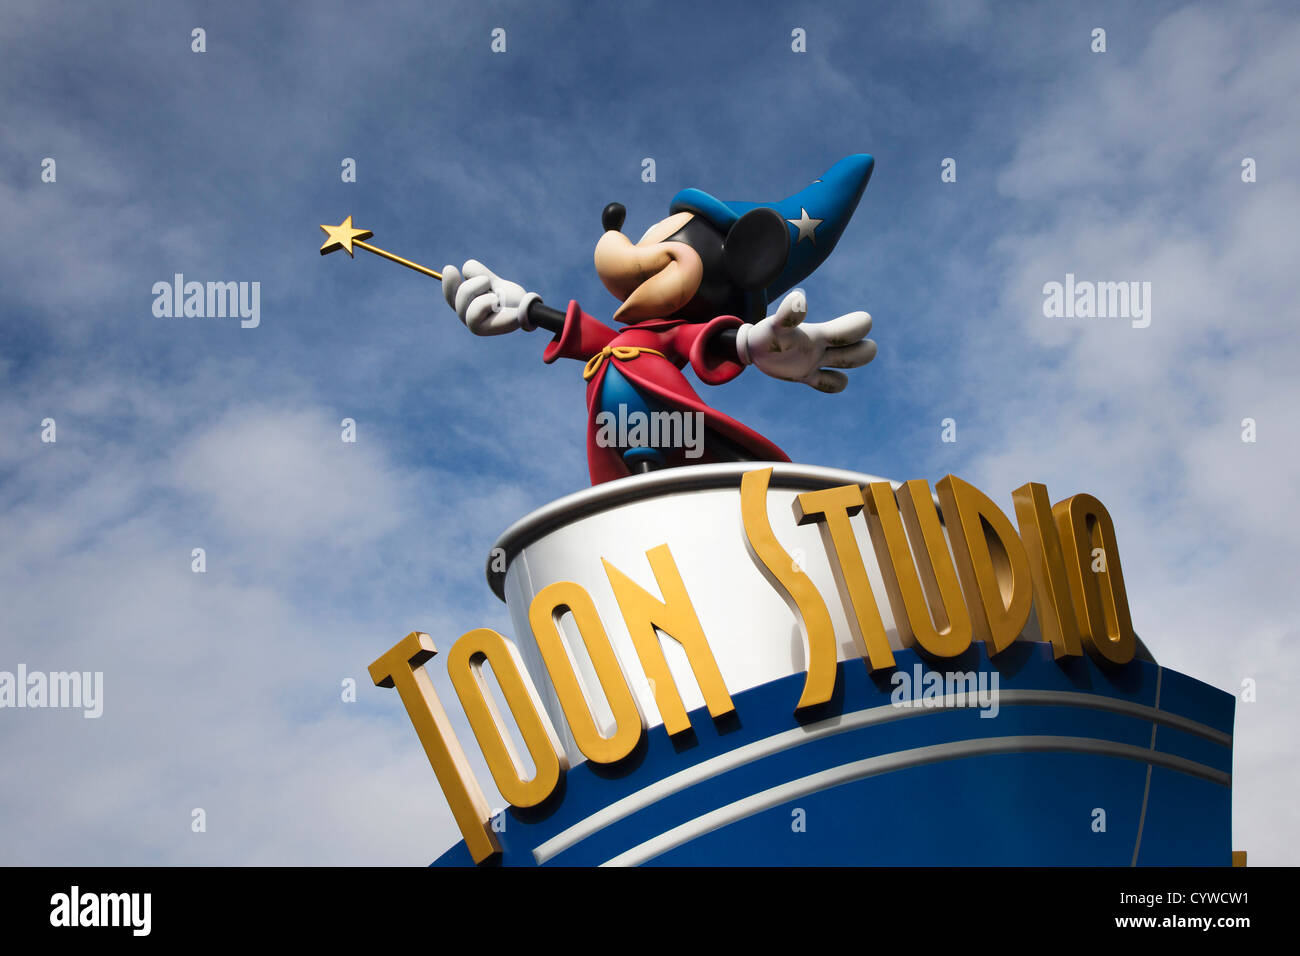 Toon Studio Mickey Mouse statue at Disneyland Paris - Stock Image